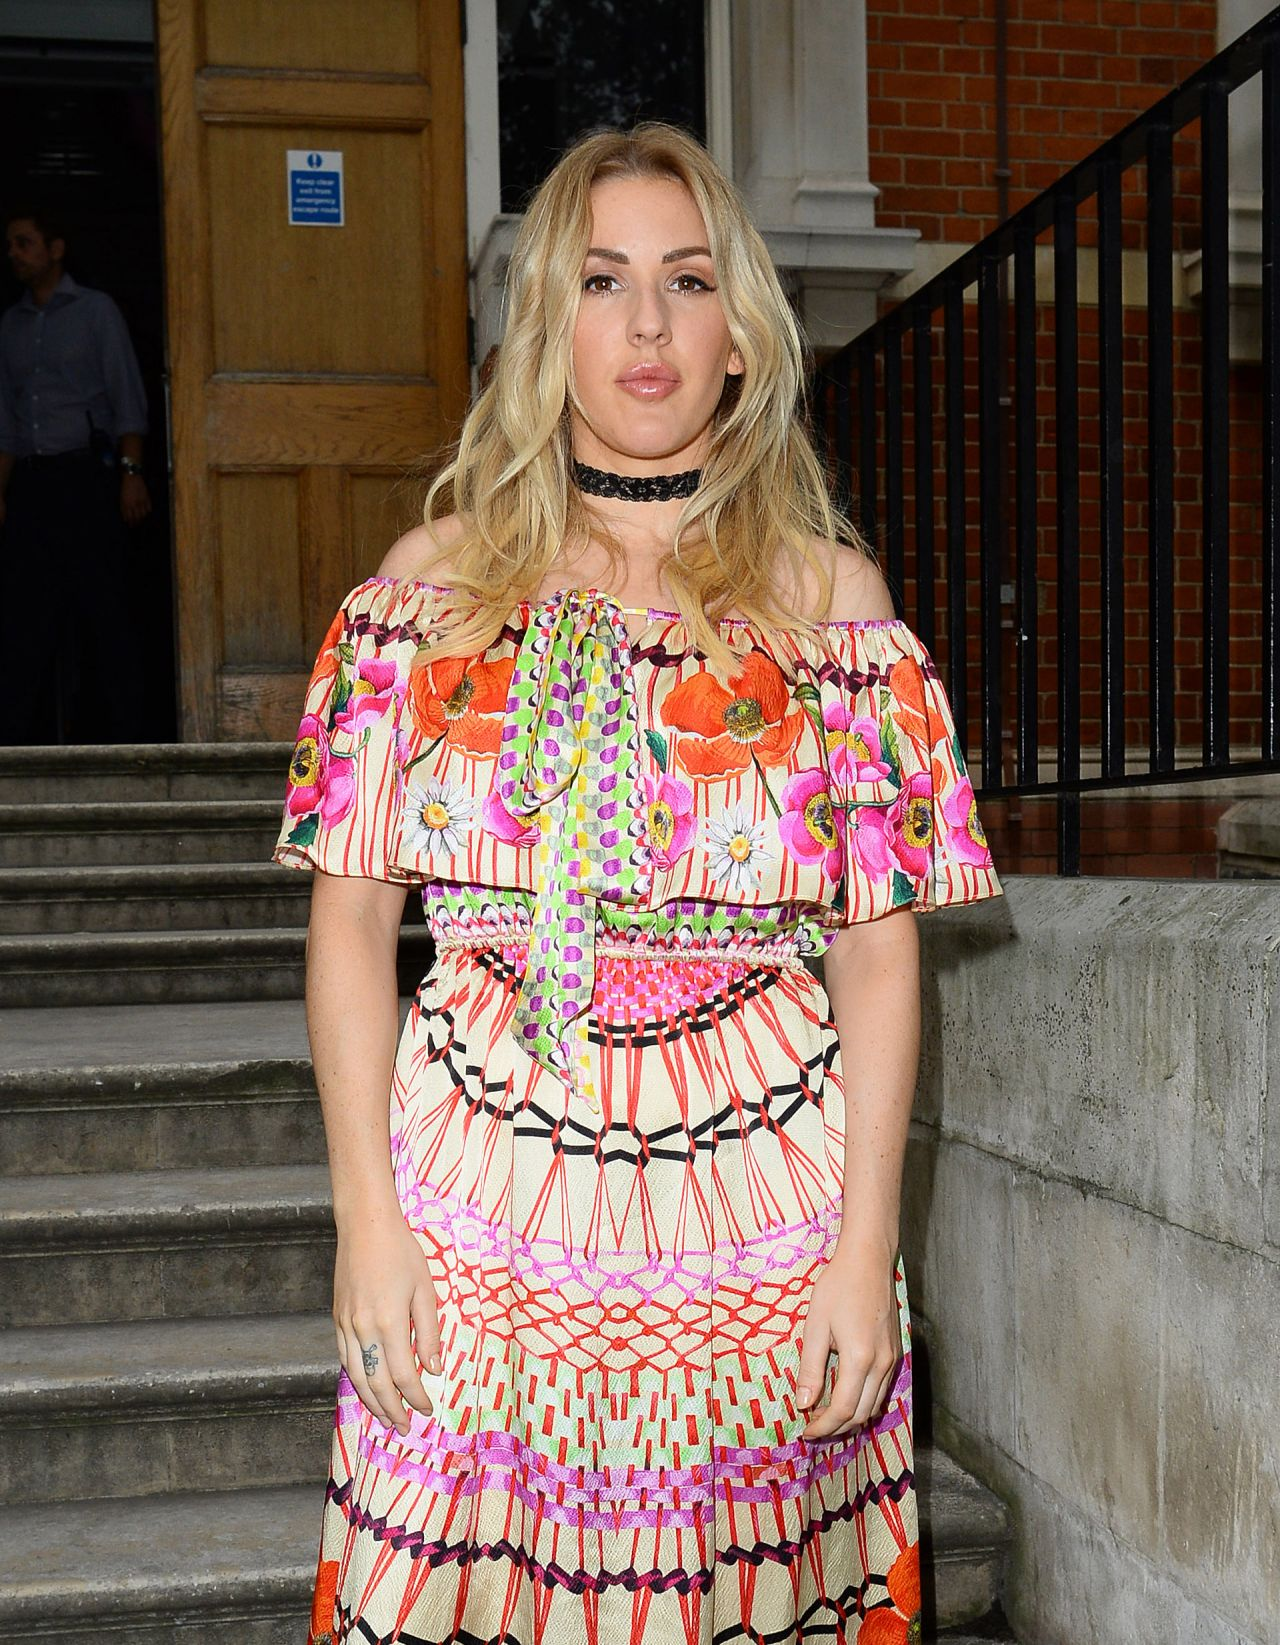 Celebrities Trands Ellie Goulding Temperley Fashion Show At Lindley Hall In London 9 18 2016